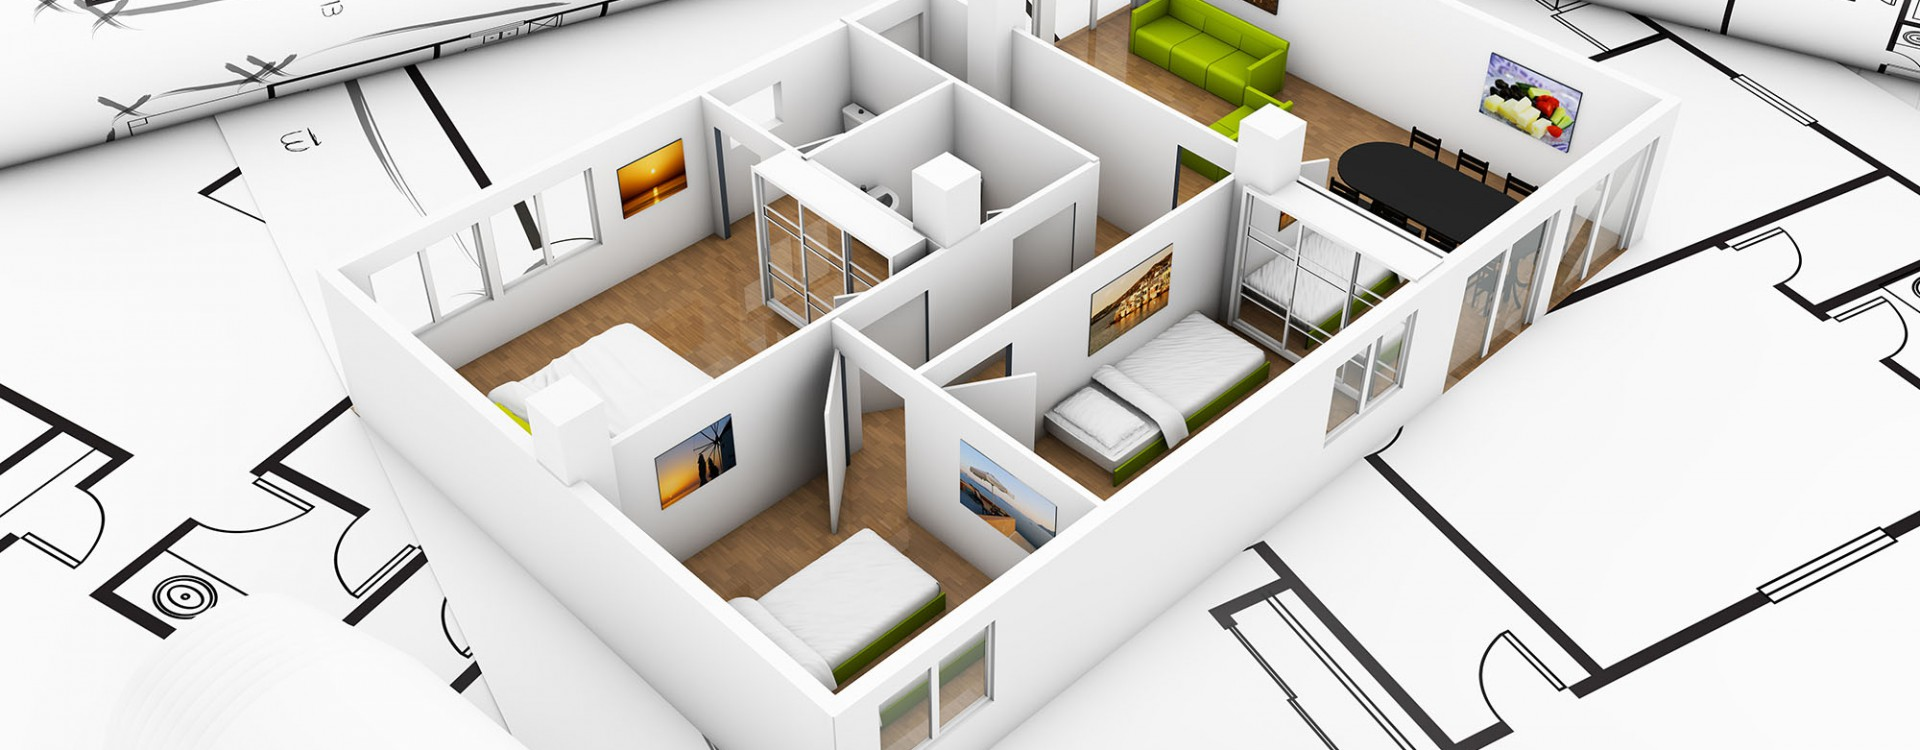 a flat mockup over plots, interior design concept